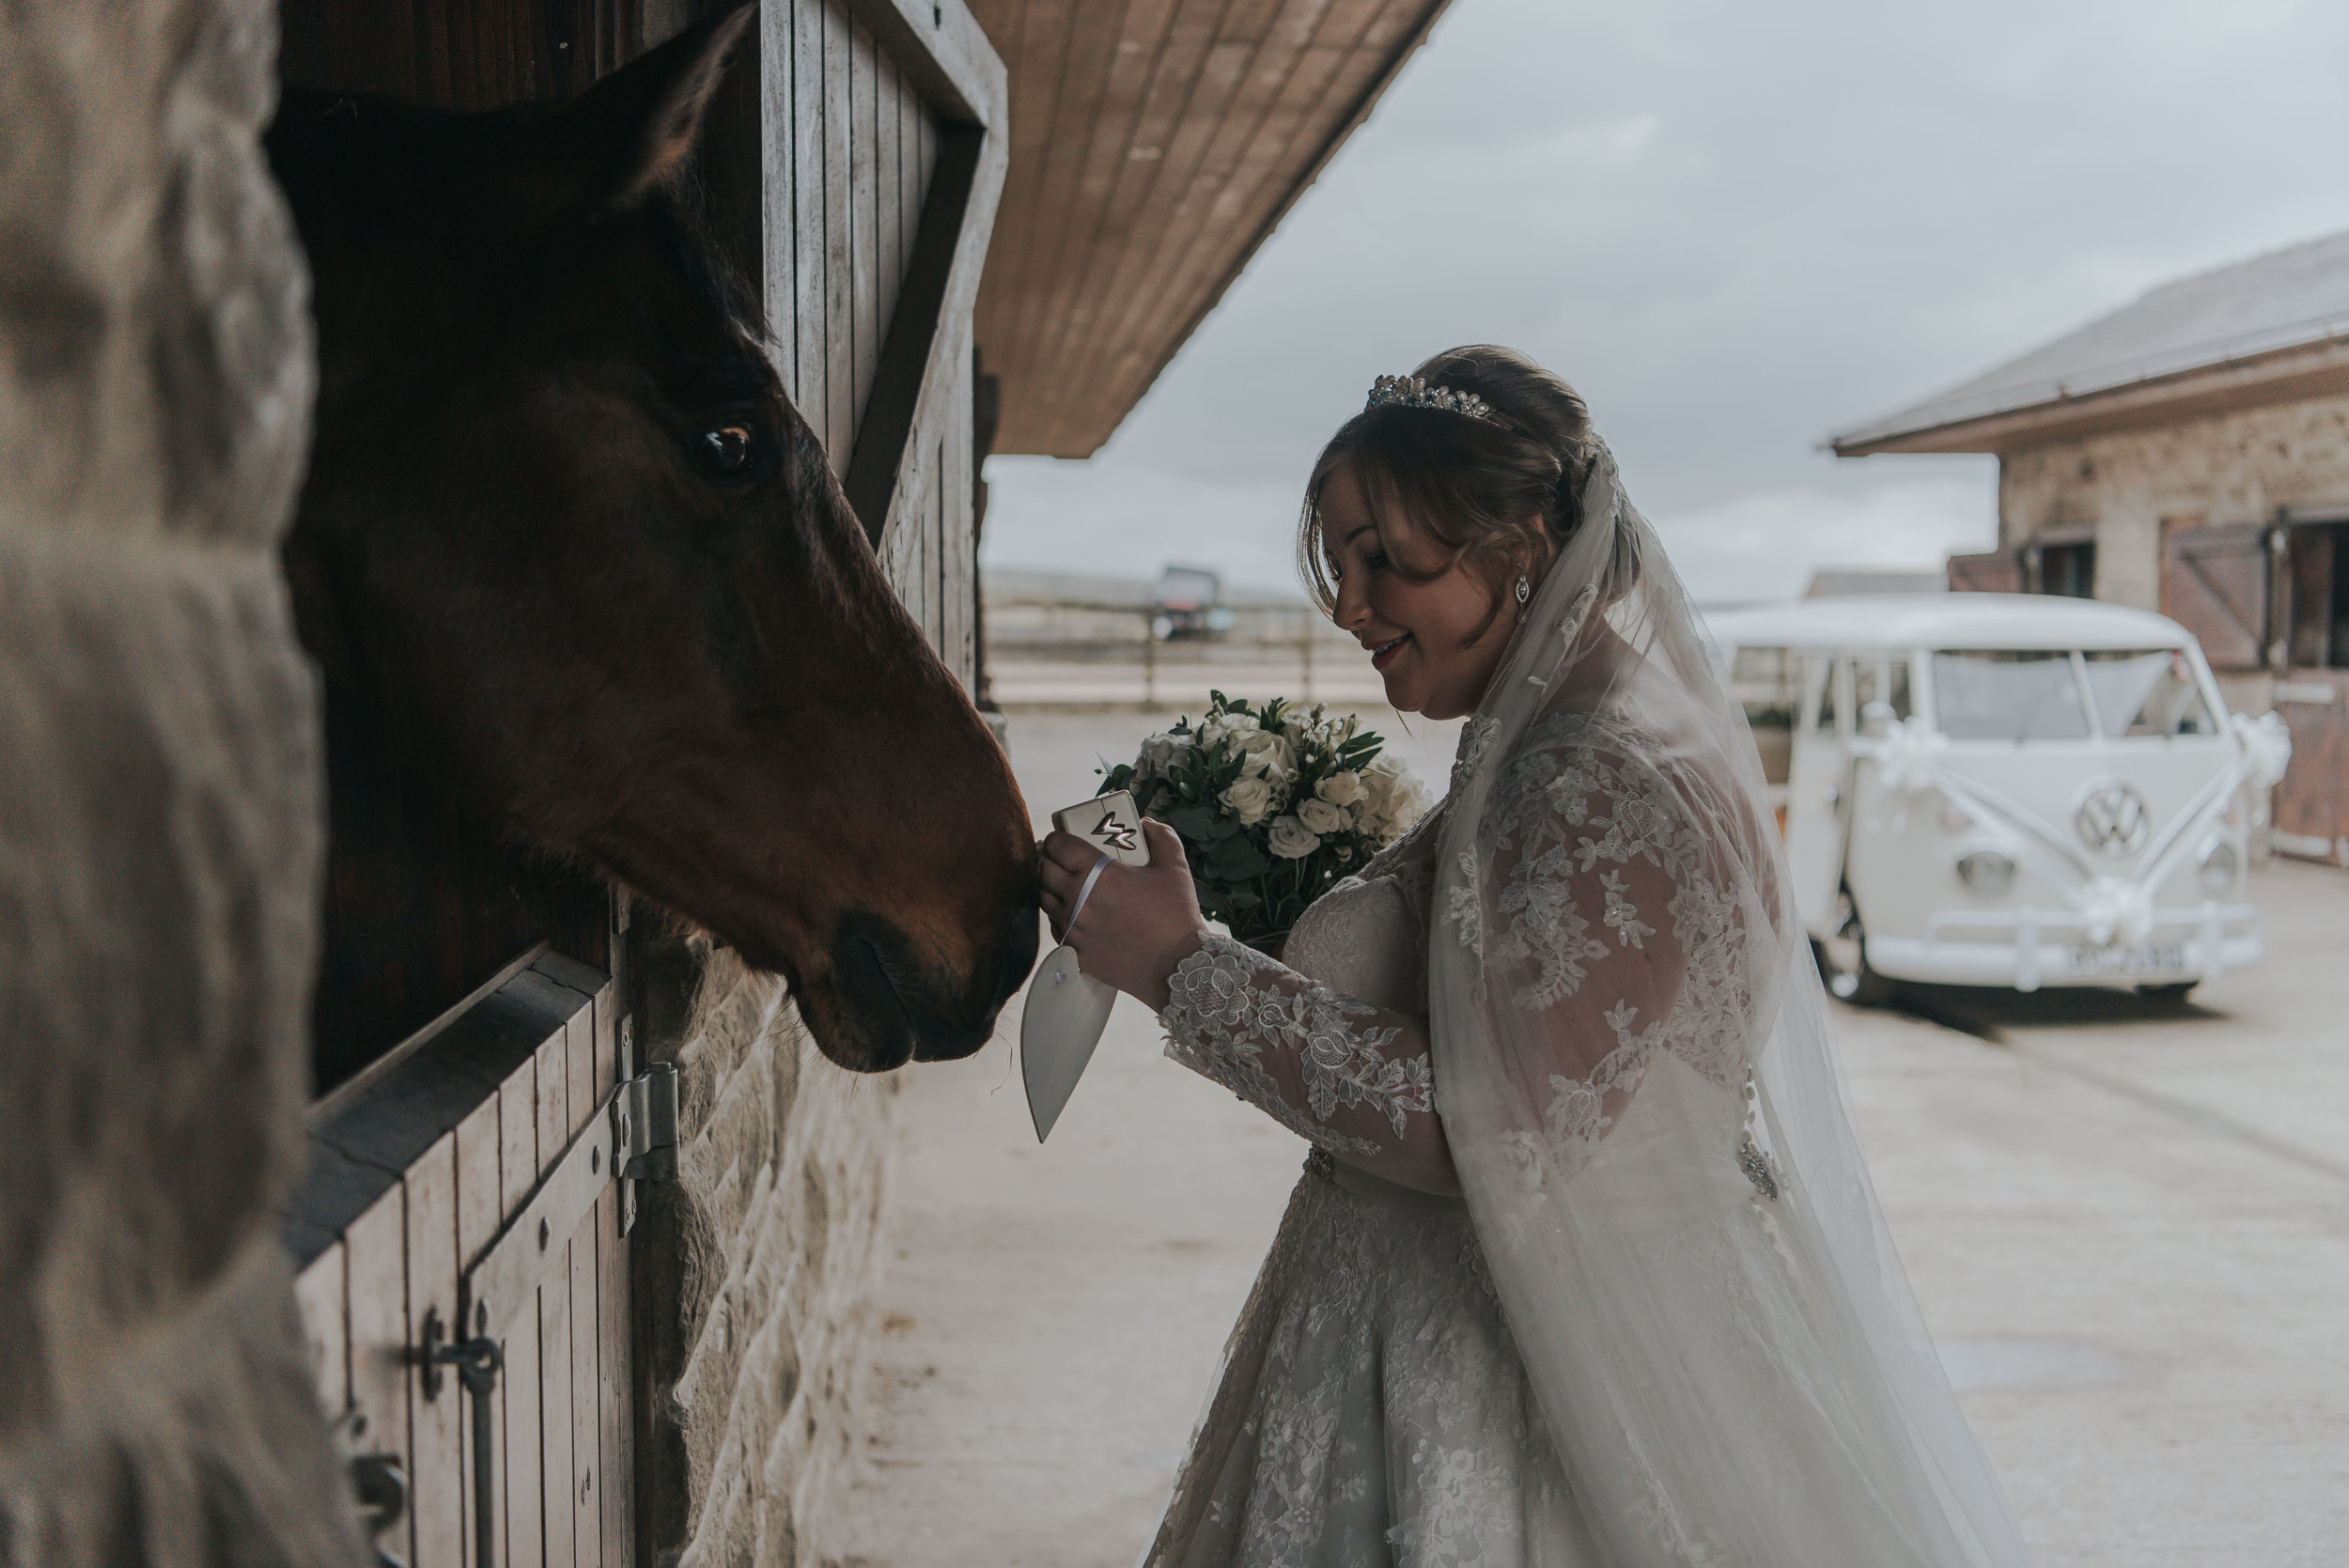 Bridal prep at Meadow Croft Farm in Bury